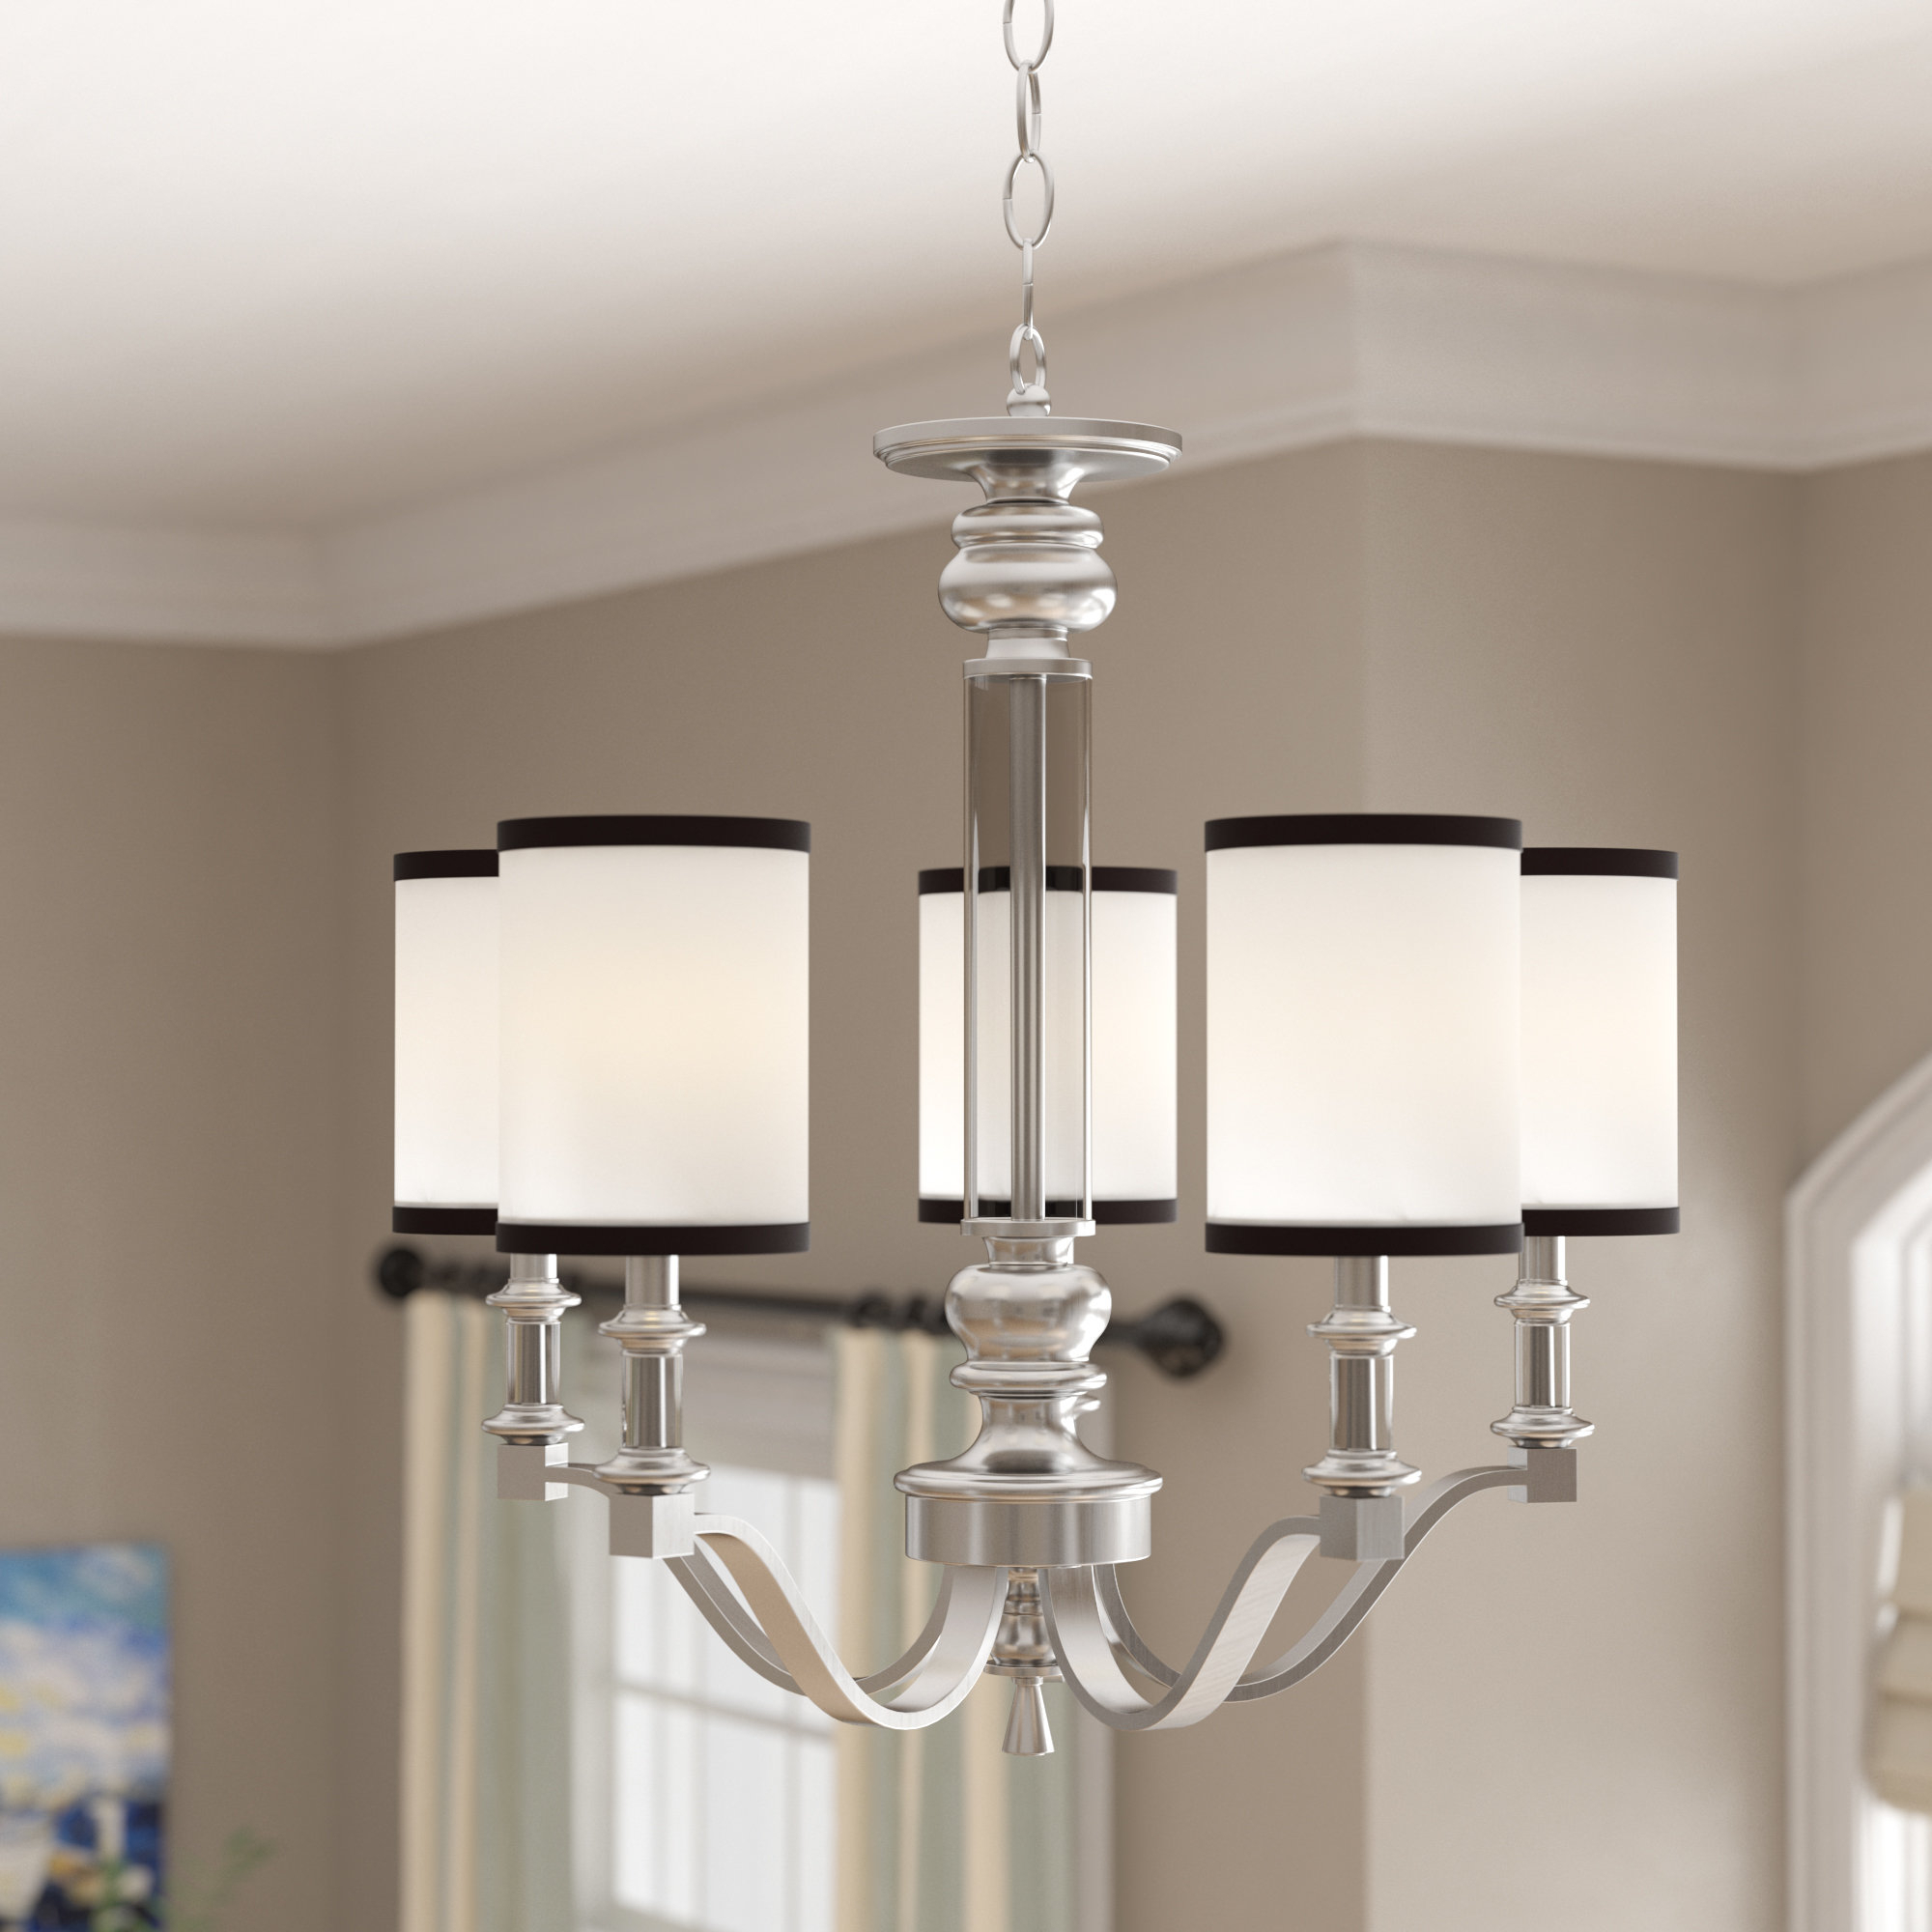 Crofoot 5 Light Shaded Chandeliers With 2020 Pfeffer 5 Light Shaded Chandelier (View 6 of 25)